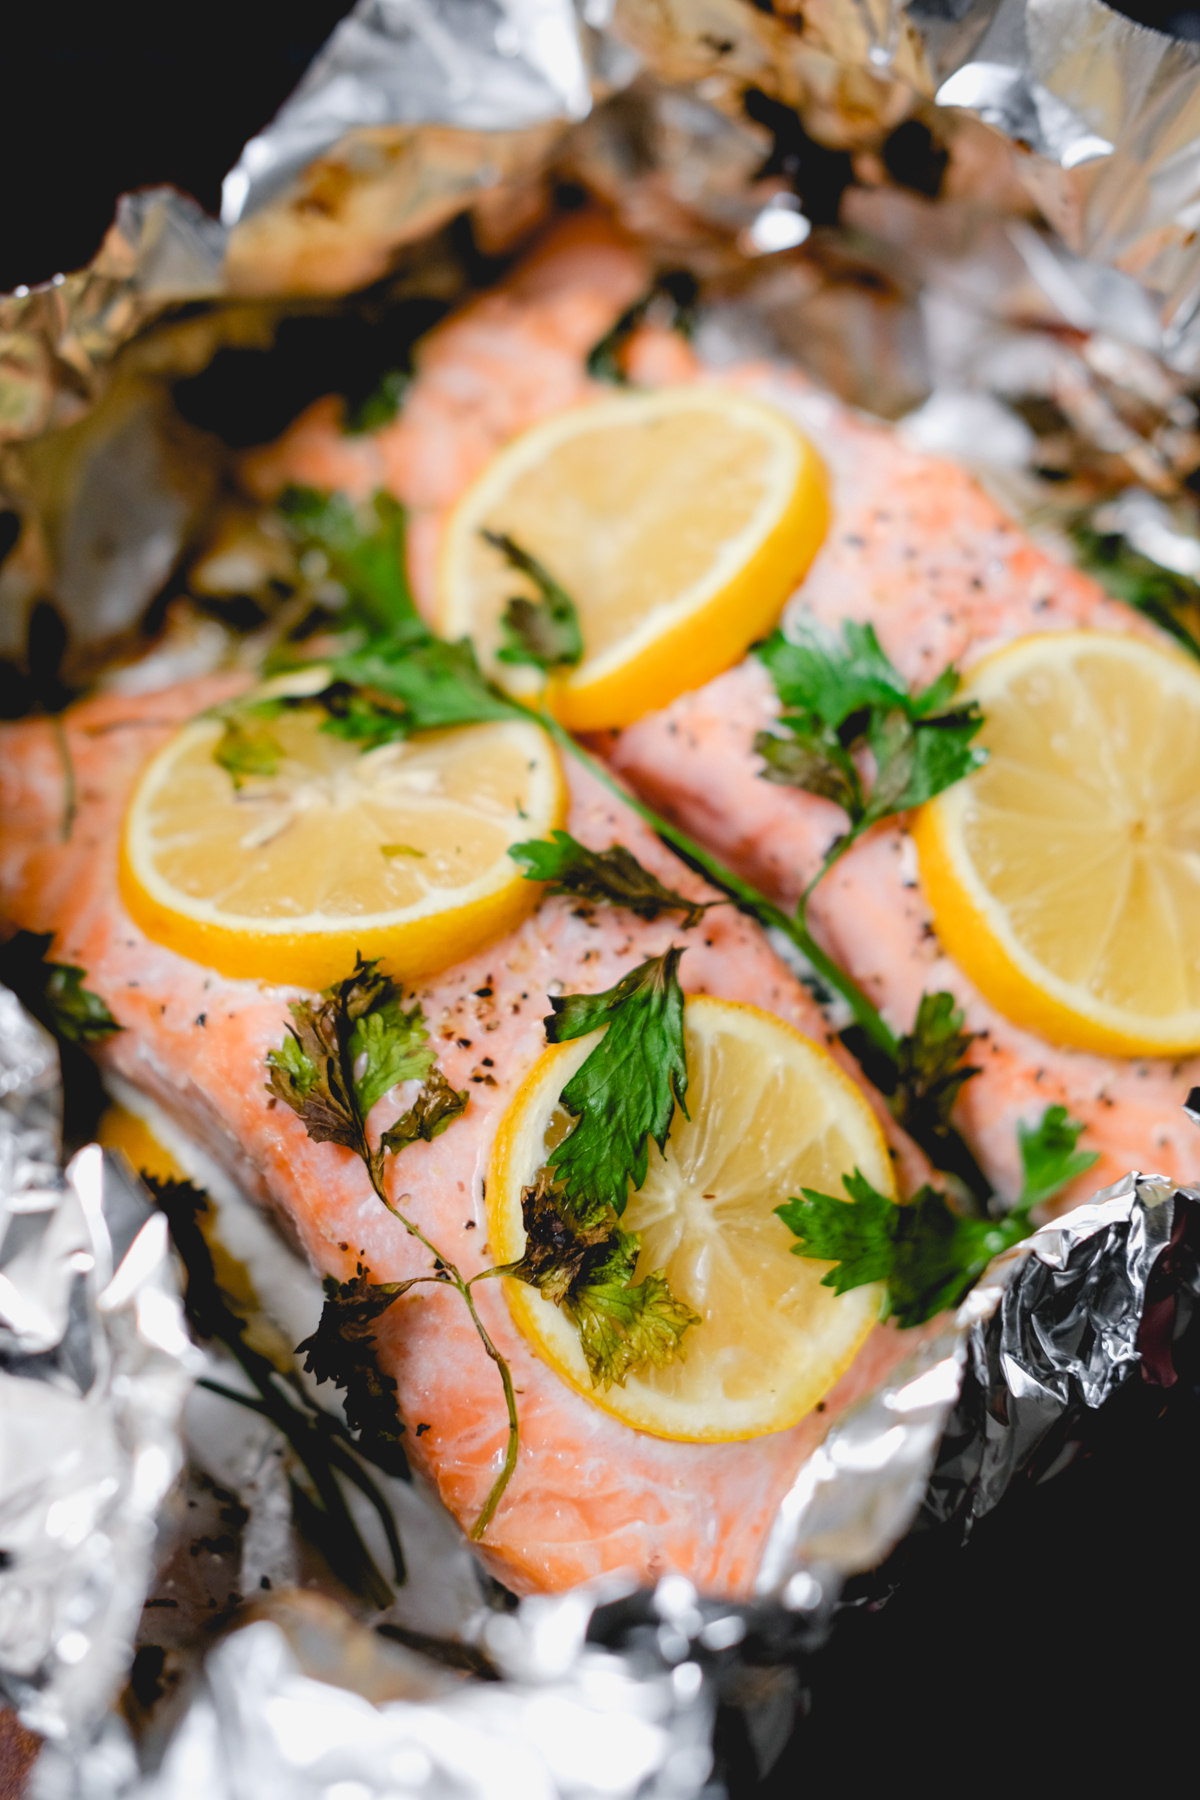 baked salmon with lemon slices and parsley in foil